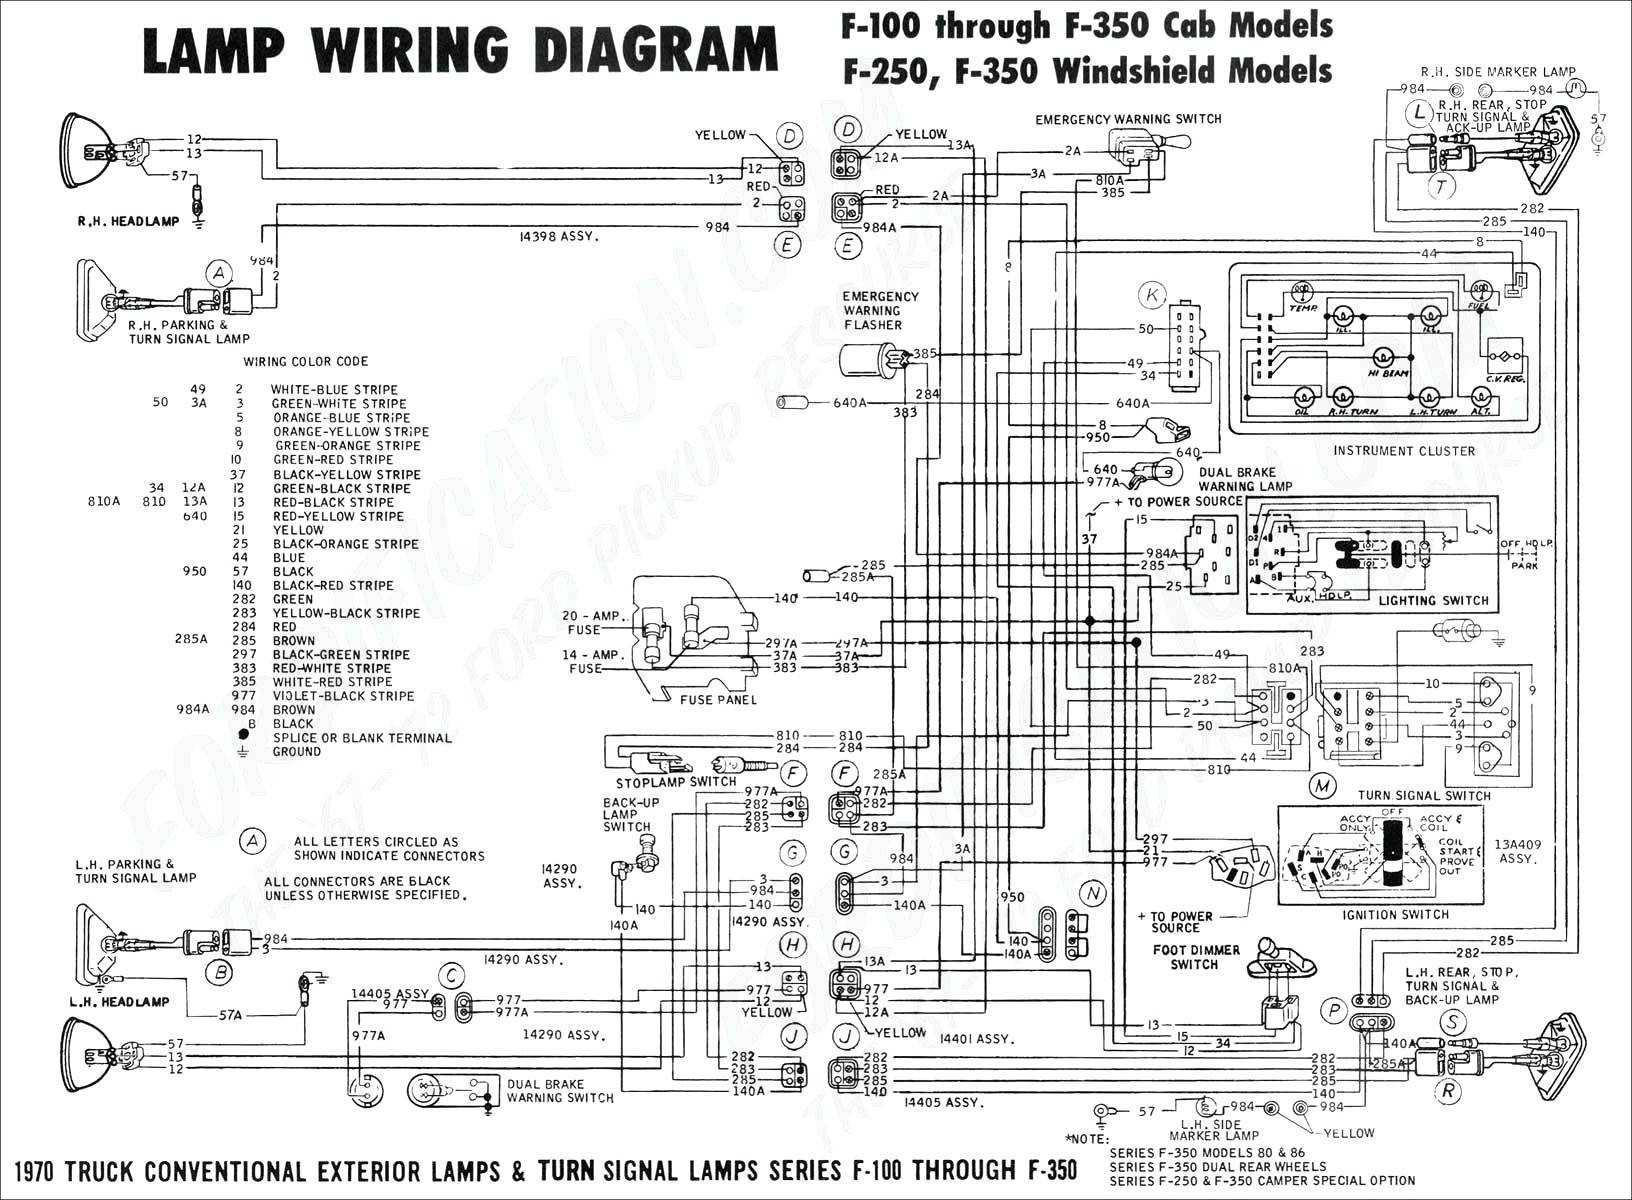 96 Geo Prizm Wiring Diagram - Lt80 Wiring Harness for Wiring Diagram  SchematicsWiring Diagram Schematics